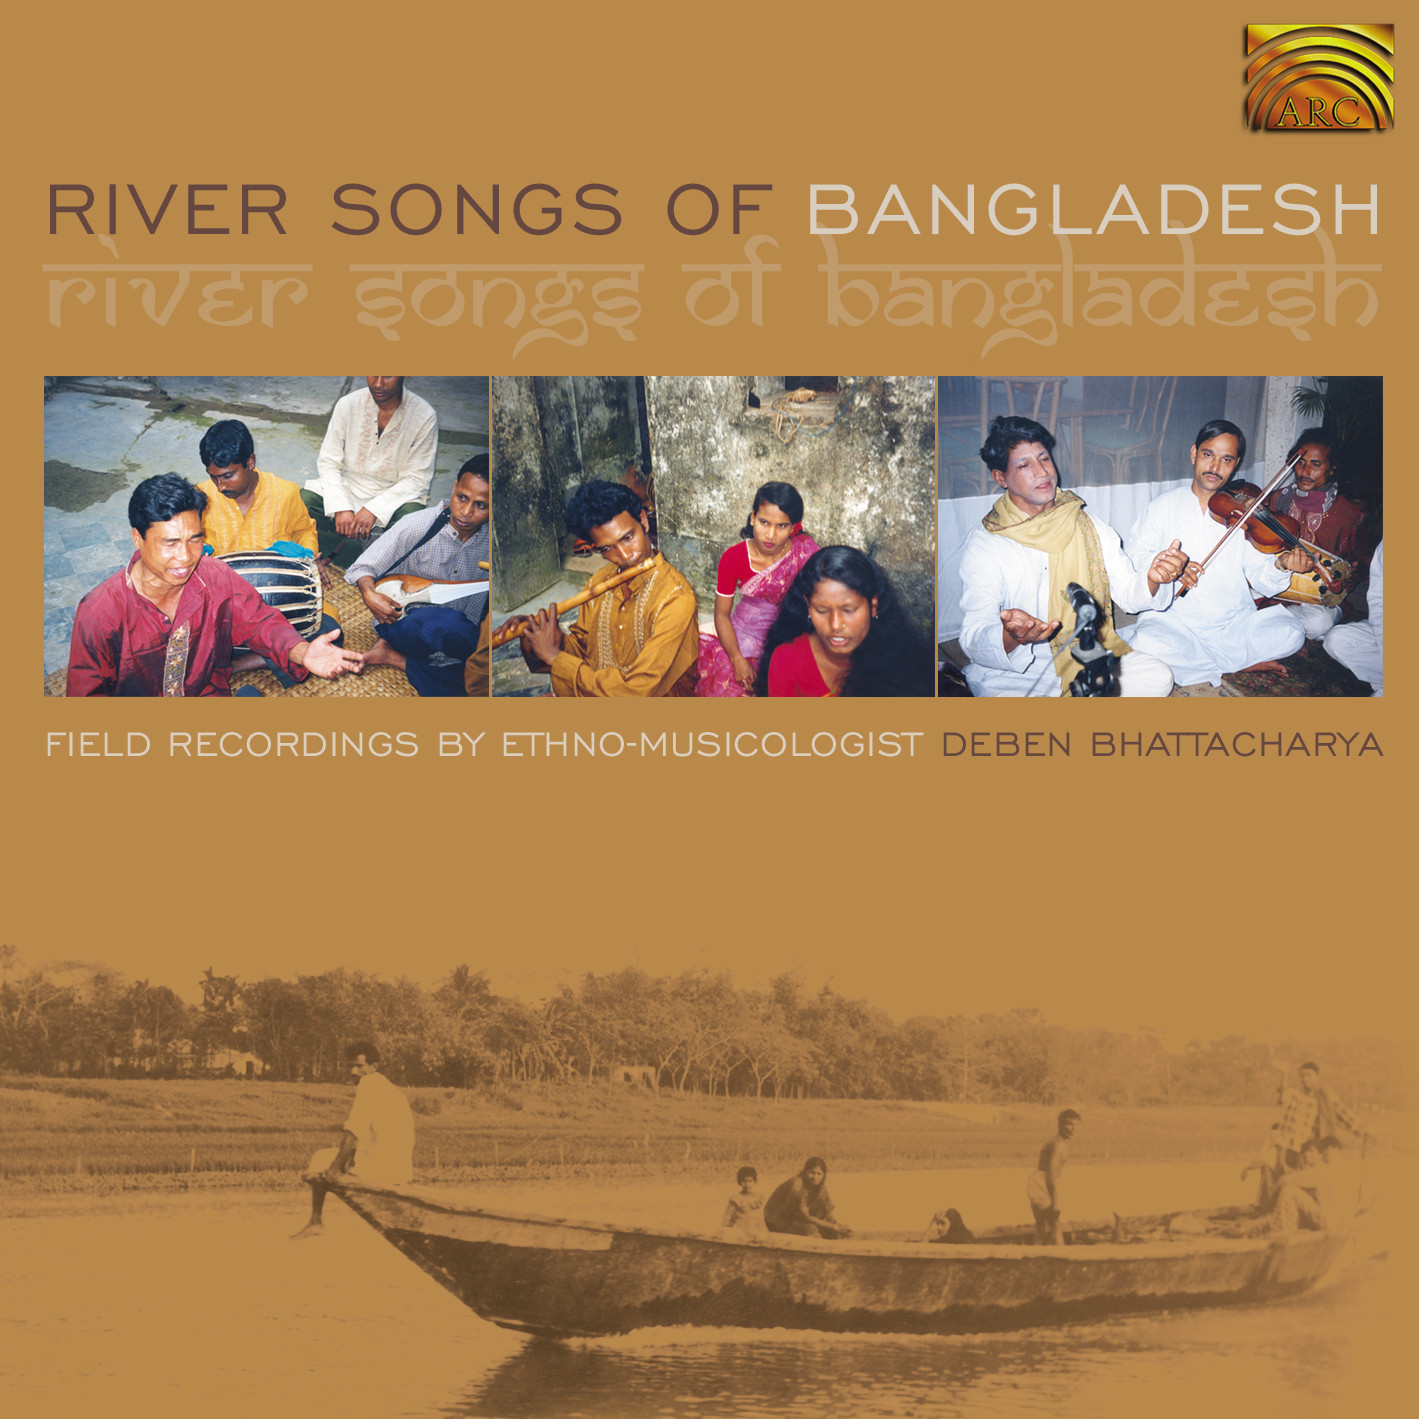 EUCD1675 River Songs of Bangladesh - Field recordings by Deben Bhattacharya